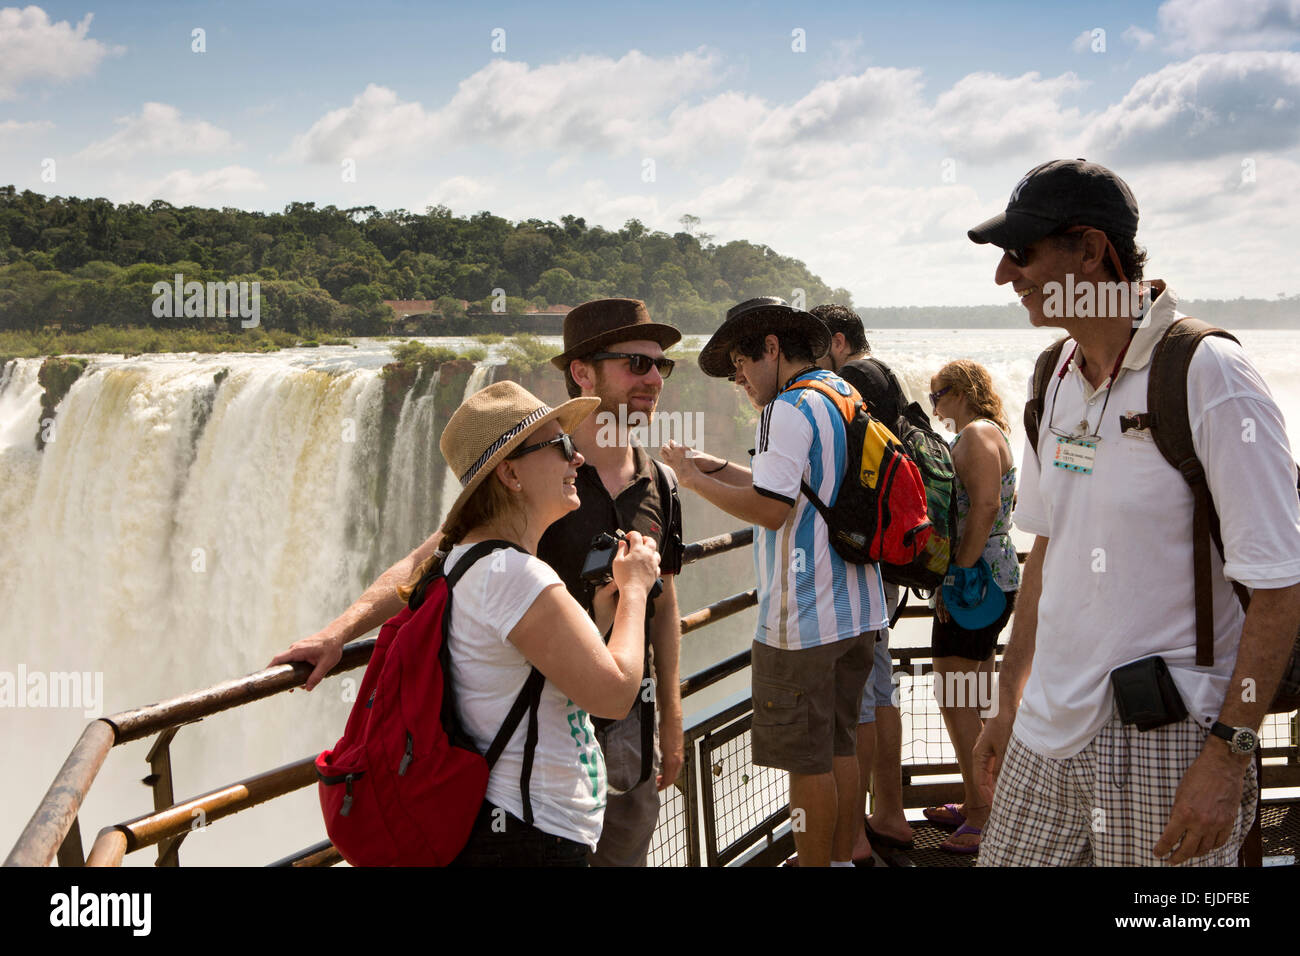 Arg437Argentina, Iguazu Falls National Park, tourists at Garganta el Diablo waterfall vewpoint - Stock Image